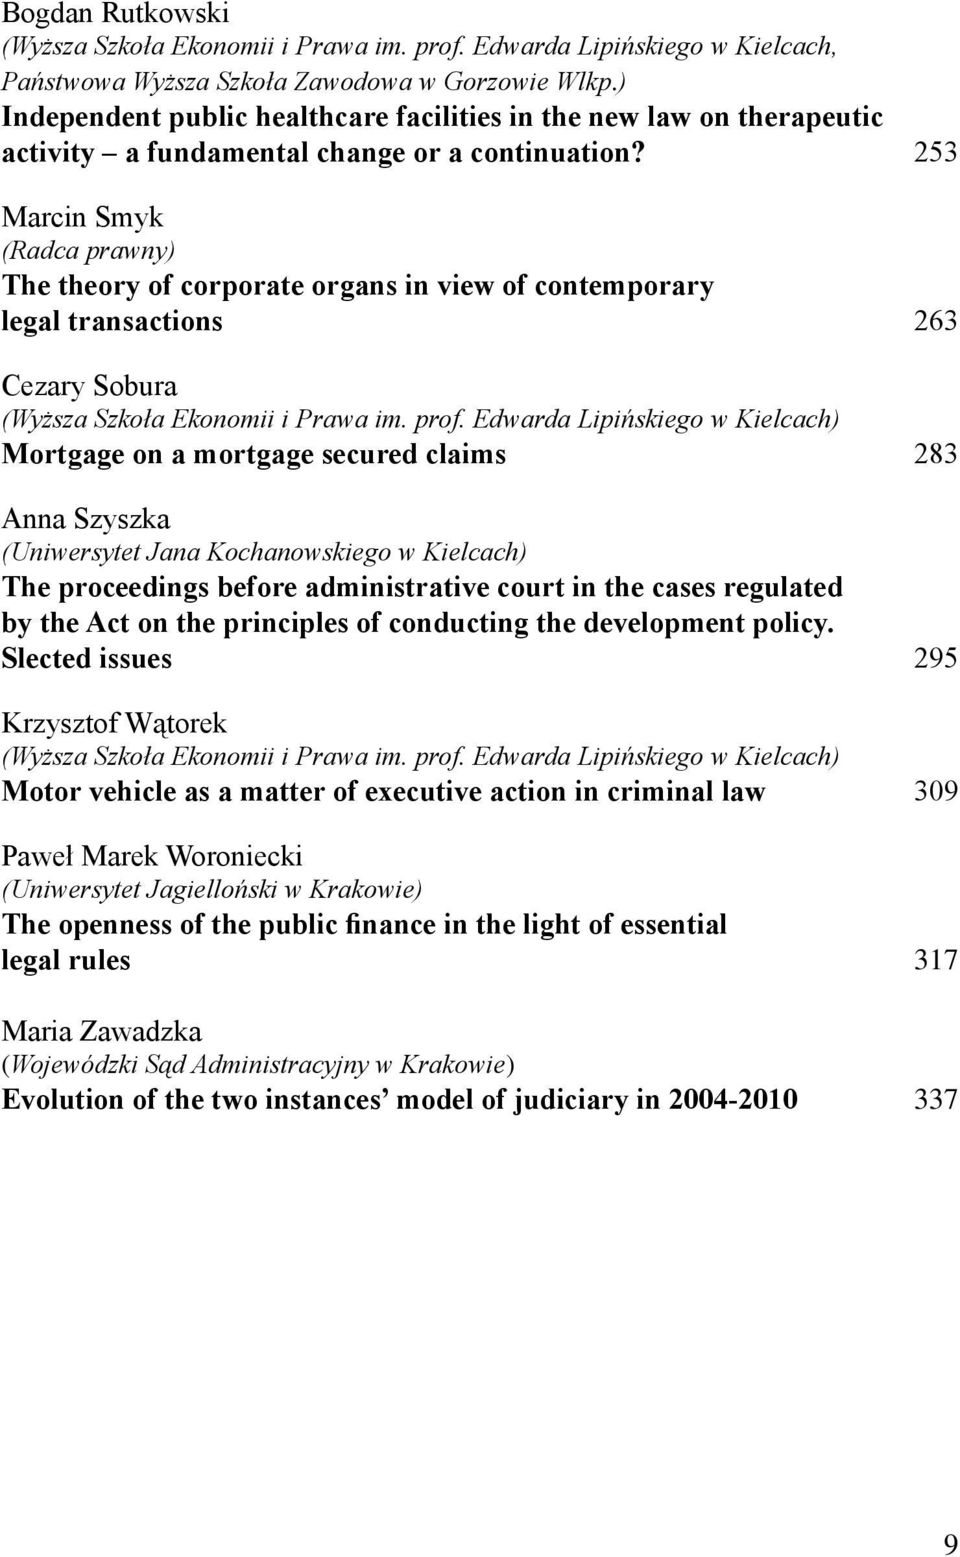 253 Marcin Smyk (Radca prawny) The theory of corporate organs in view of contemporary legal transactions 263 Cezary Sobura Mortgage on a mortgage secured claims 283 Anna Szyszka The proceedings